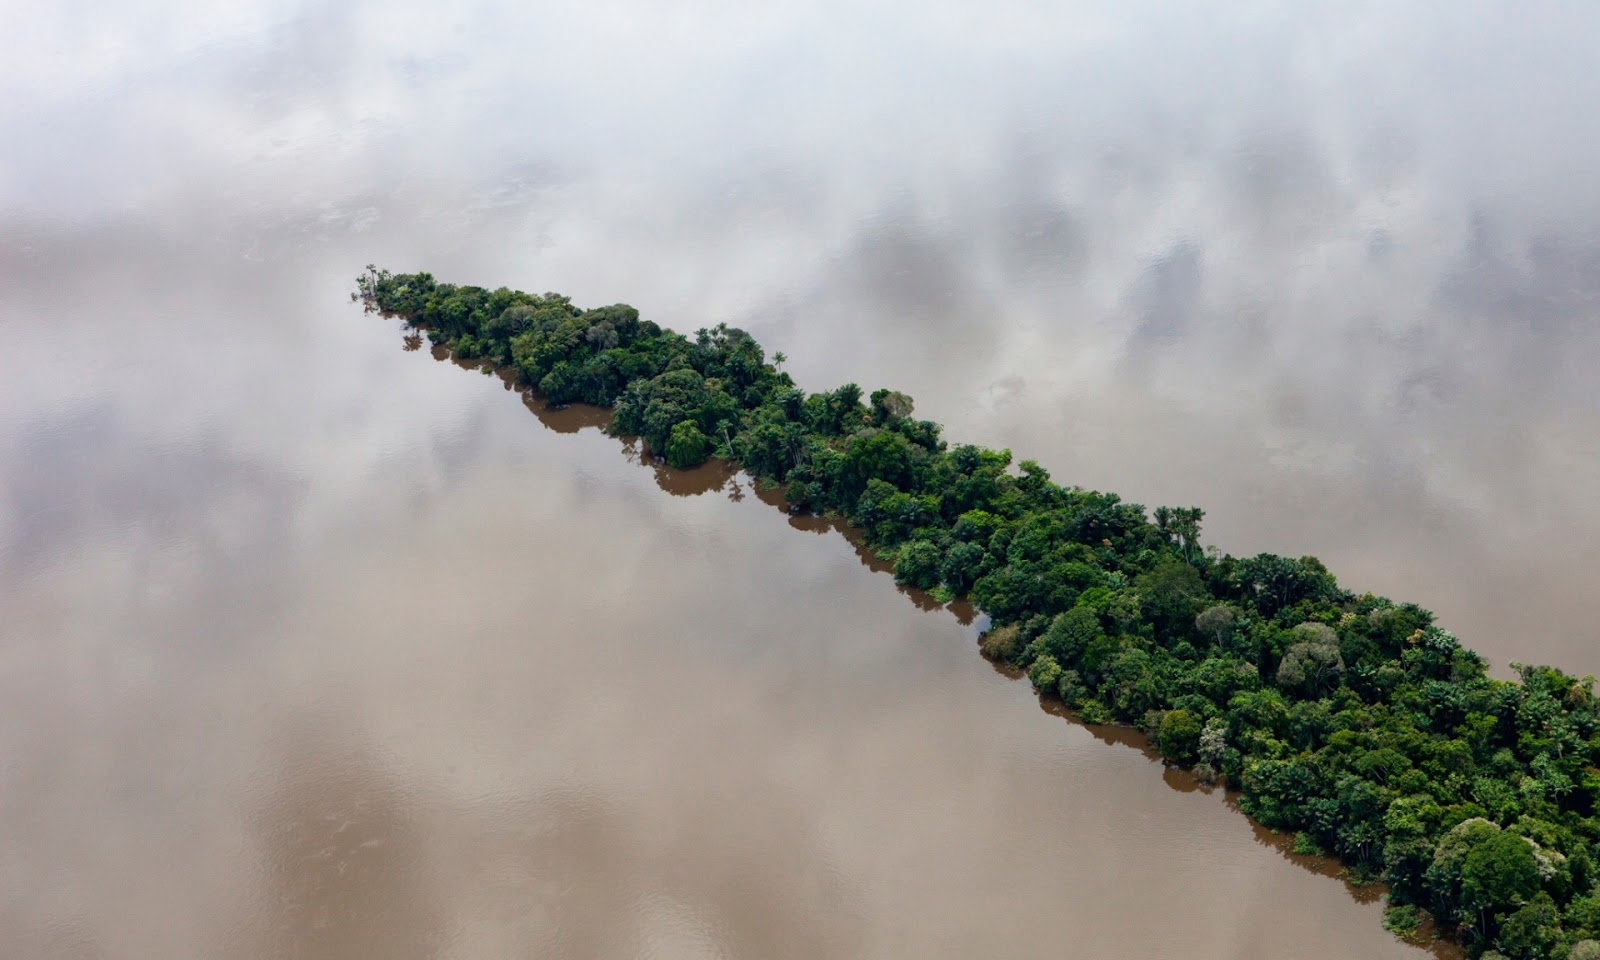 Photograph, Daniel Beltra: Para, Brazil. February 11, 2012. Aerials south of Santarem and along the road BR163. Rainforest in the Tapajos River.